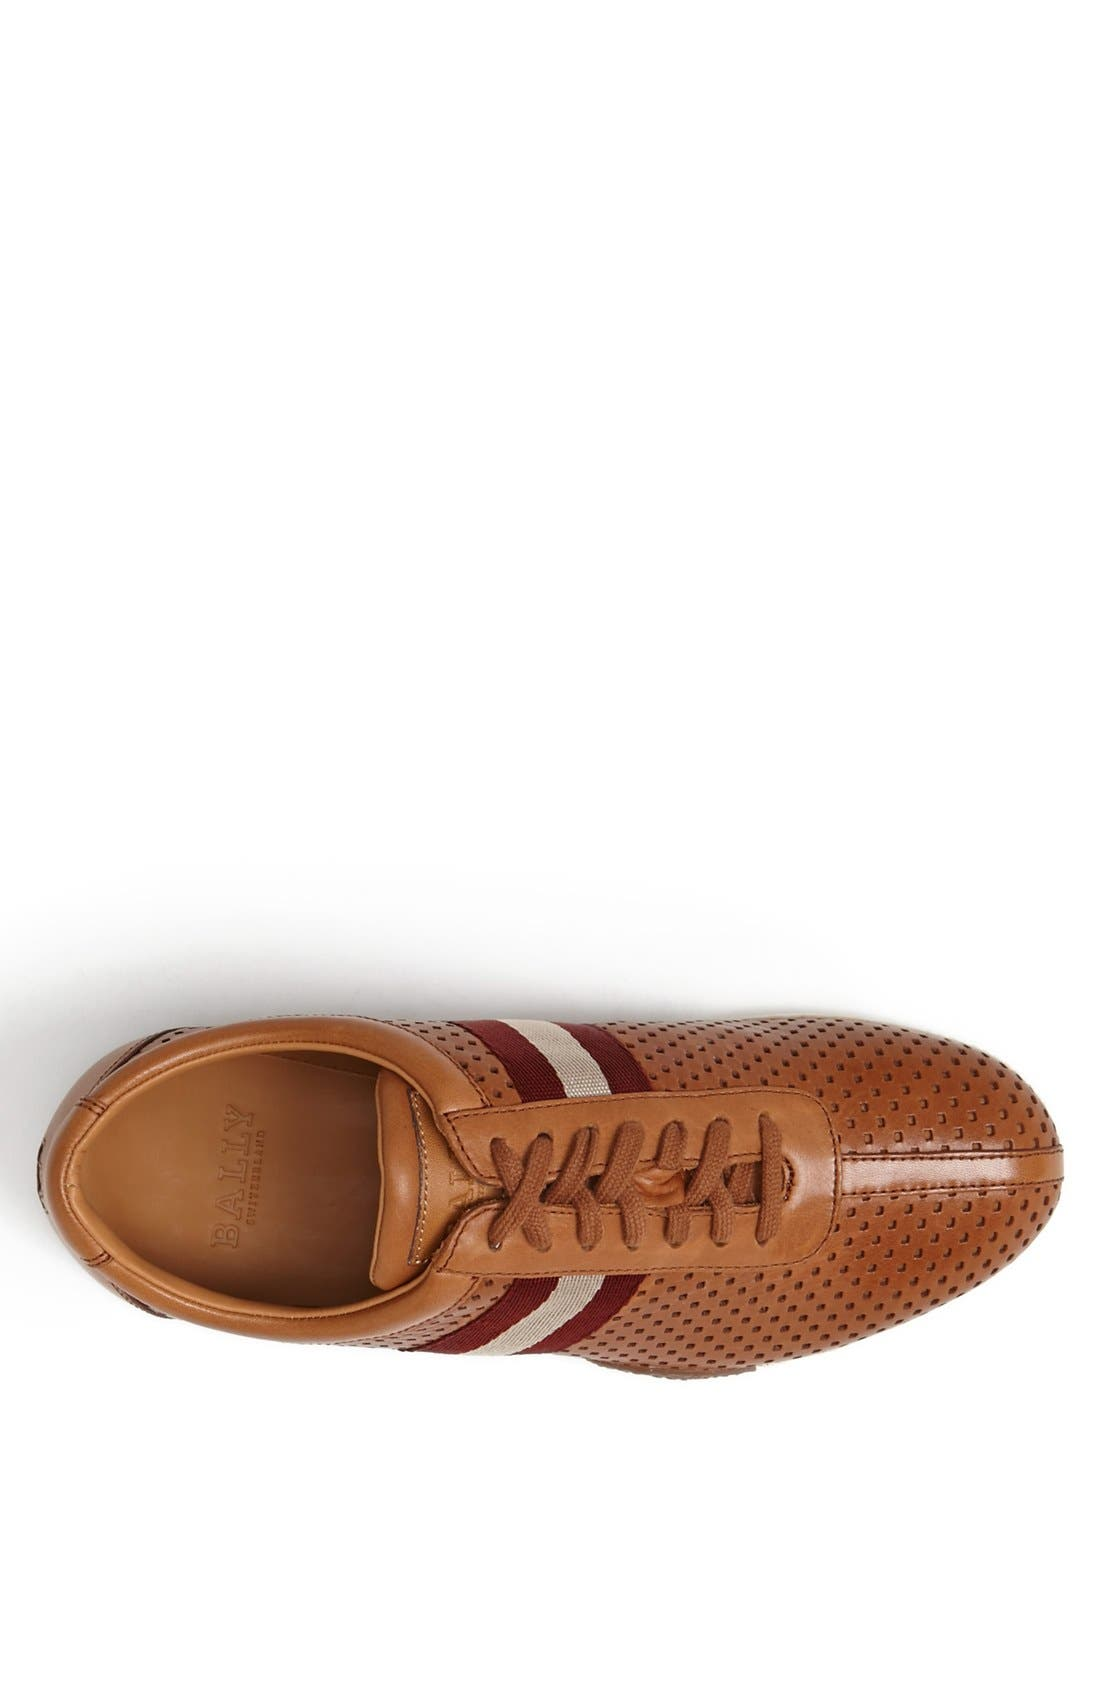 Alternate Image 3  - Bally 'Freenew' Perforated Leather Sneaker